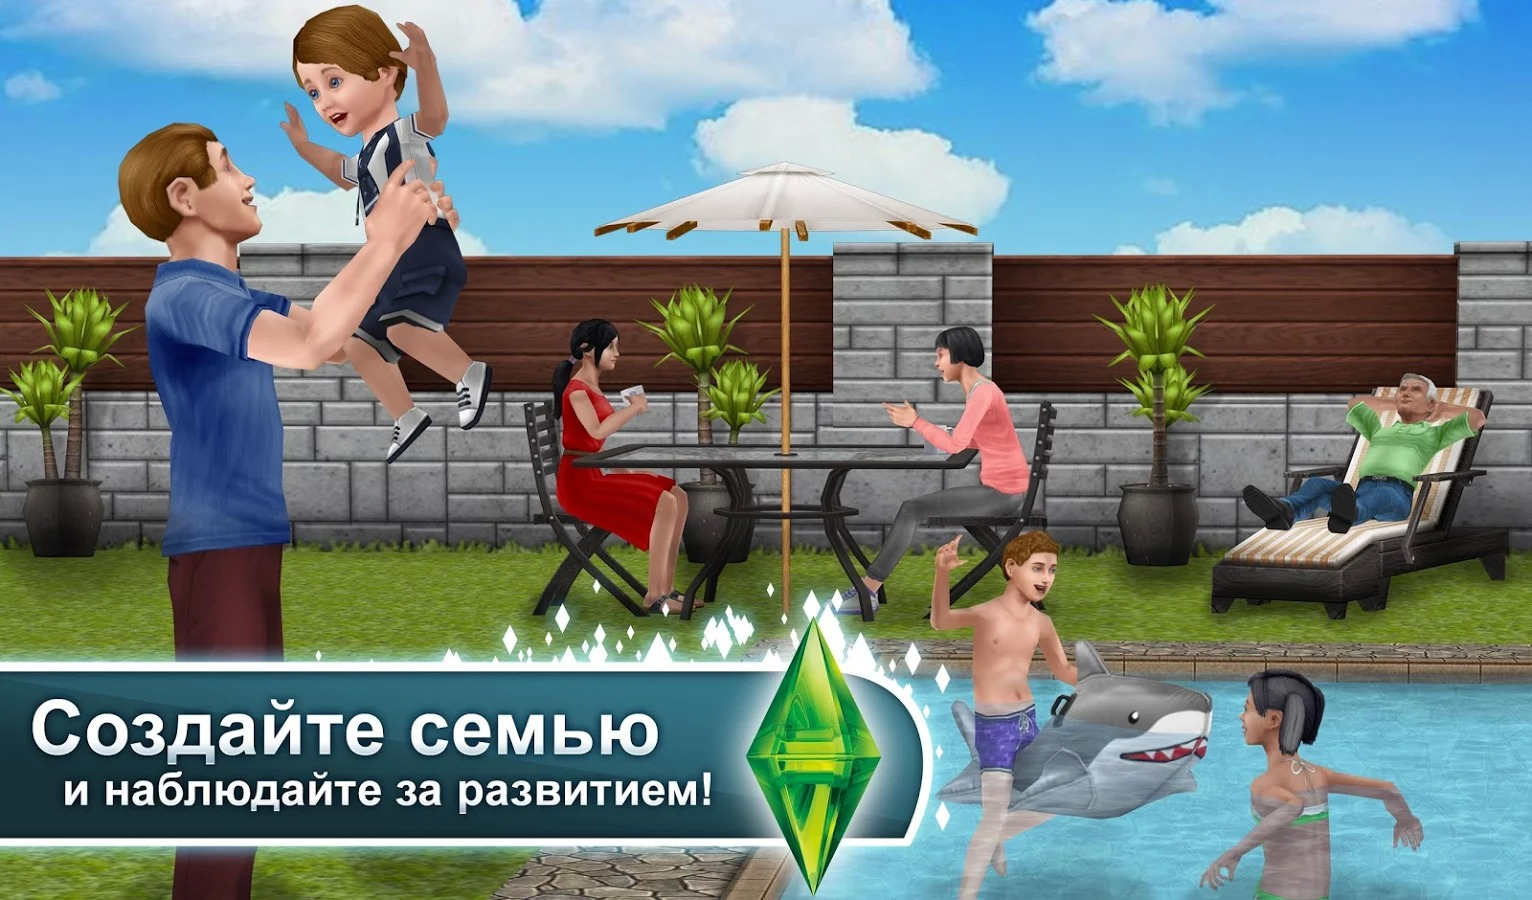 ������� ������� ���� The Sims: FreePlay (����. ��������� ����) ��������� apk ��� ����������� � �������� ���.